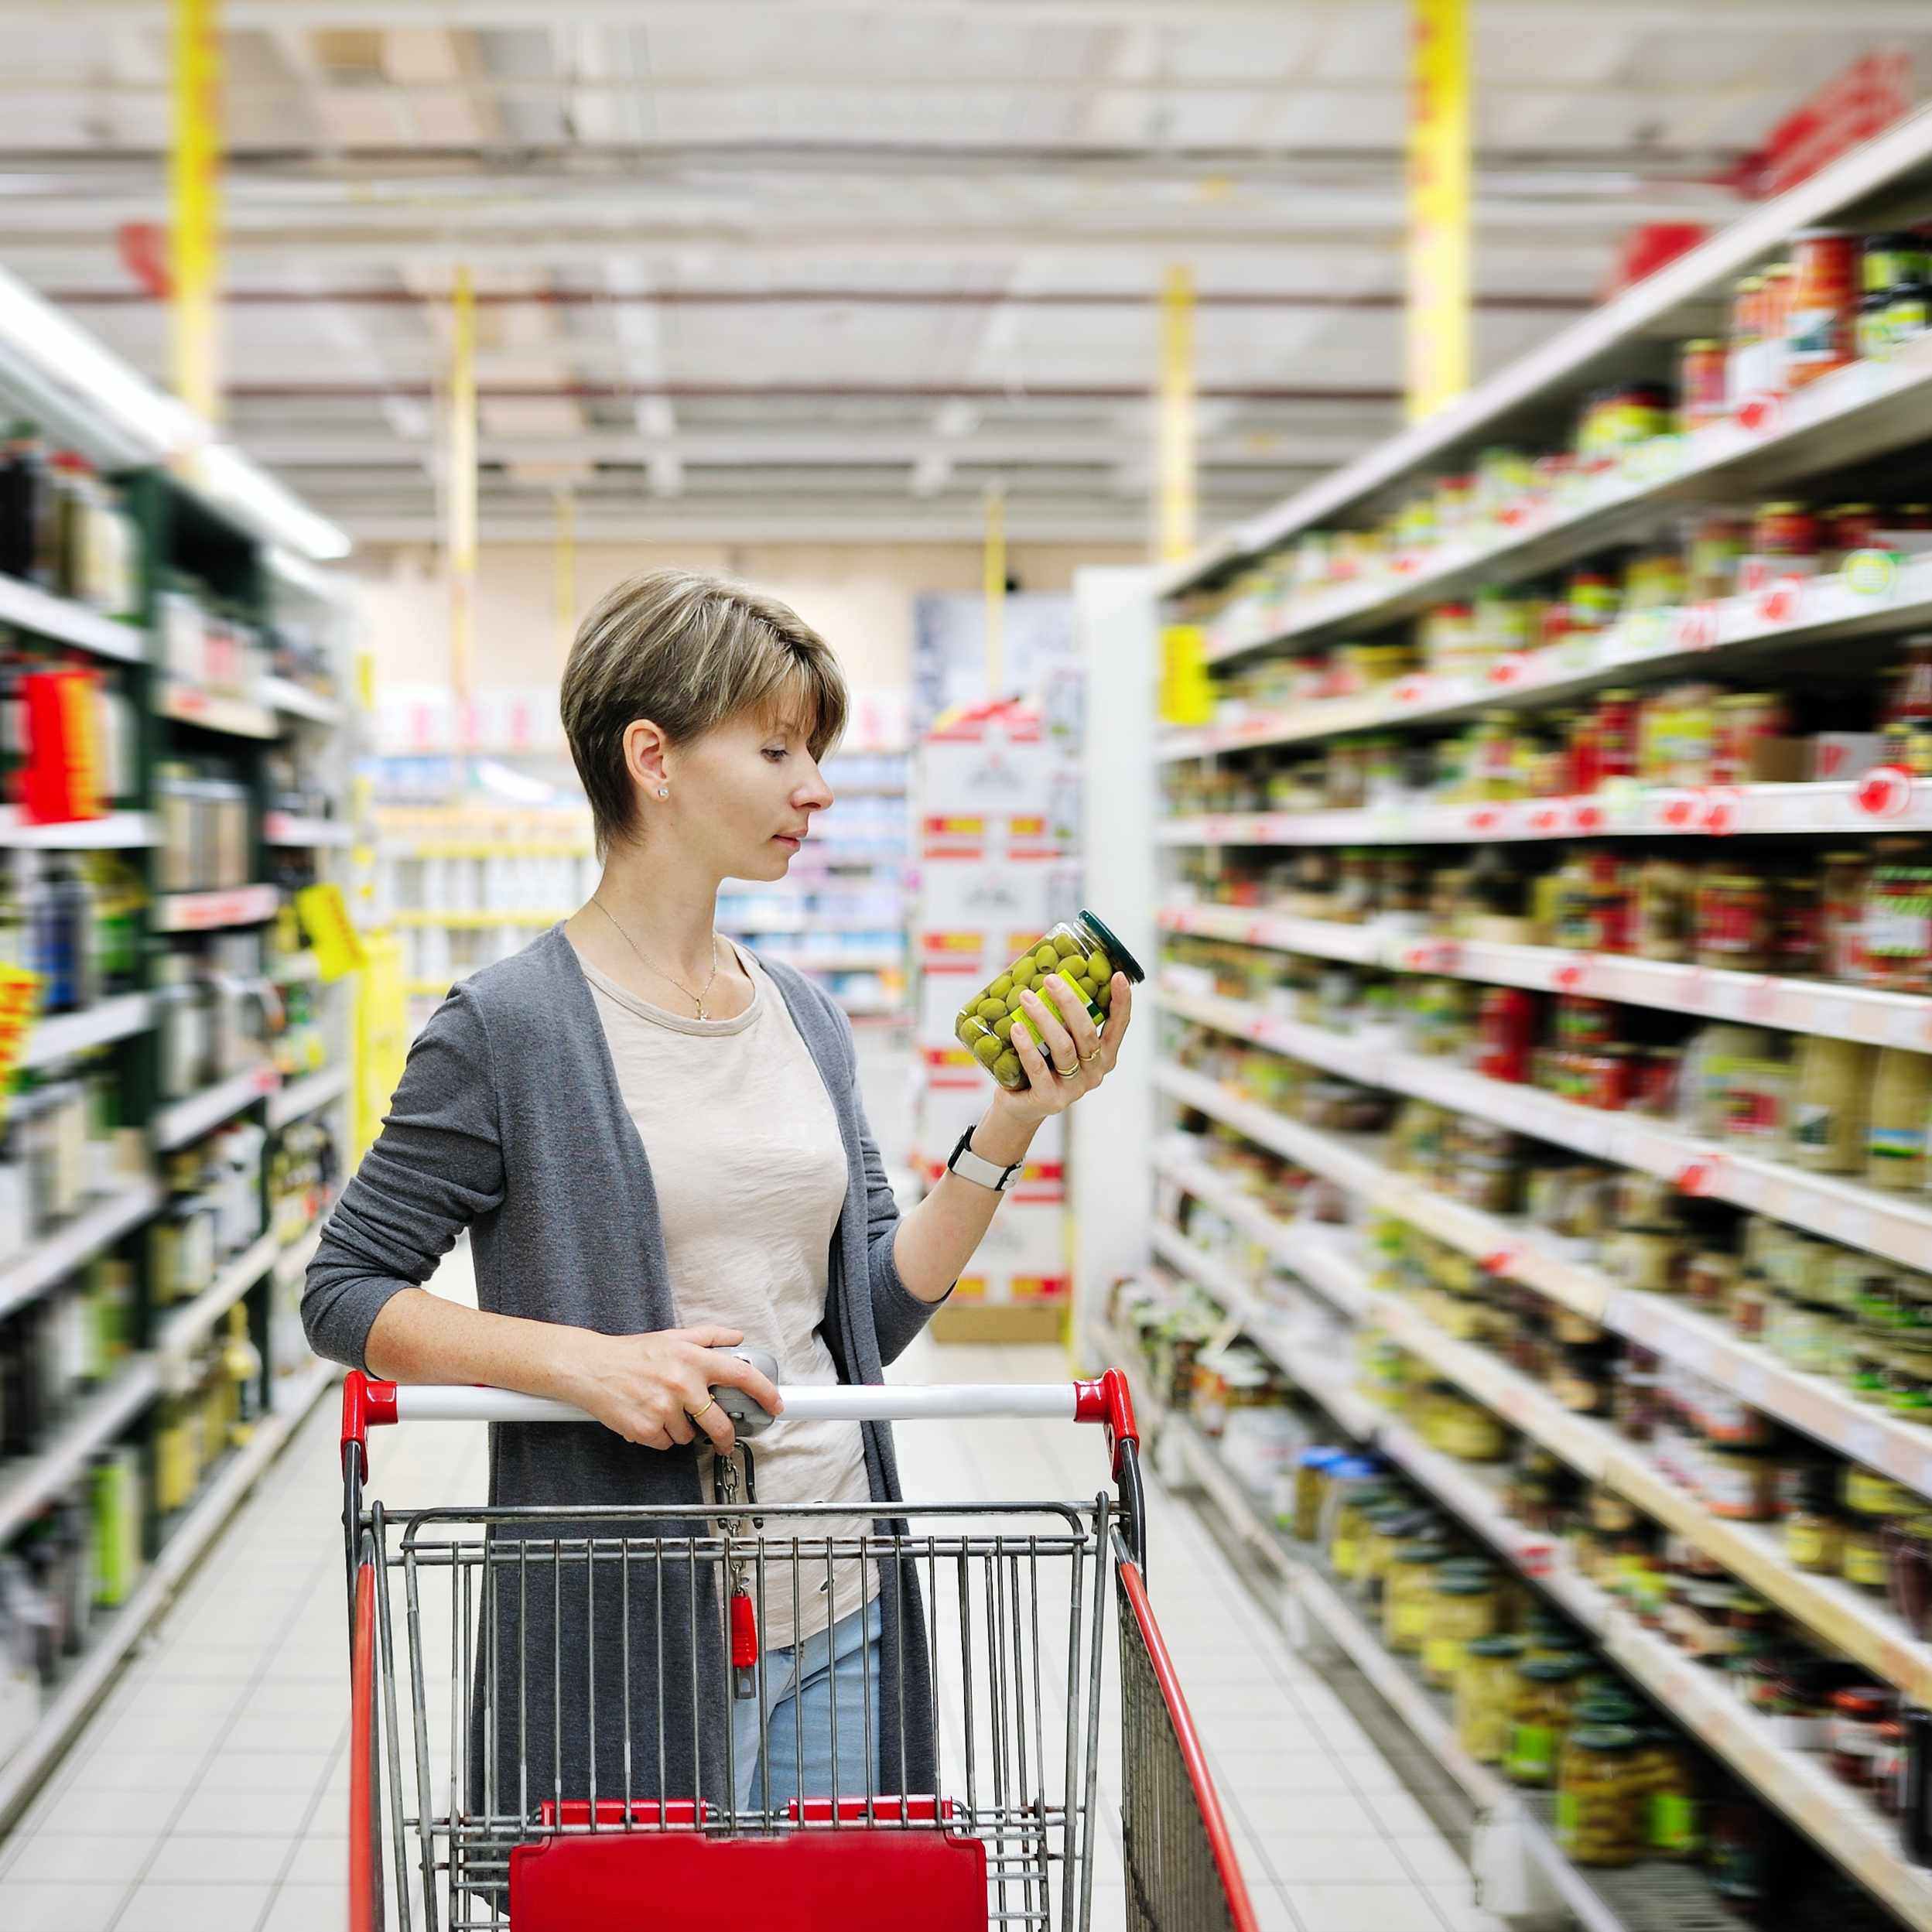 a young woman pushing a shopping cart in a grocery store reading a food label